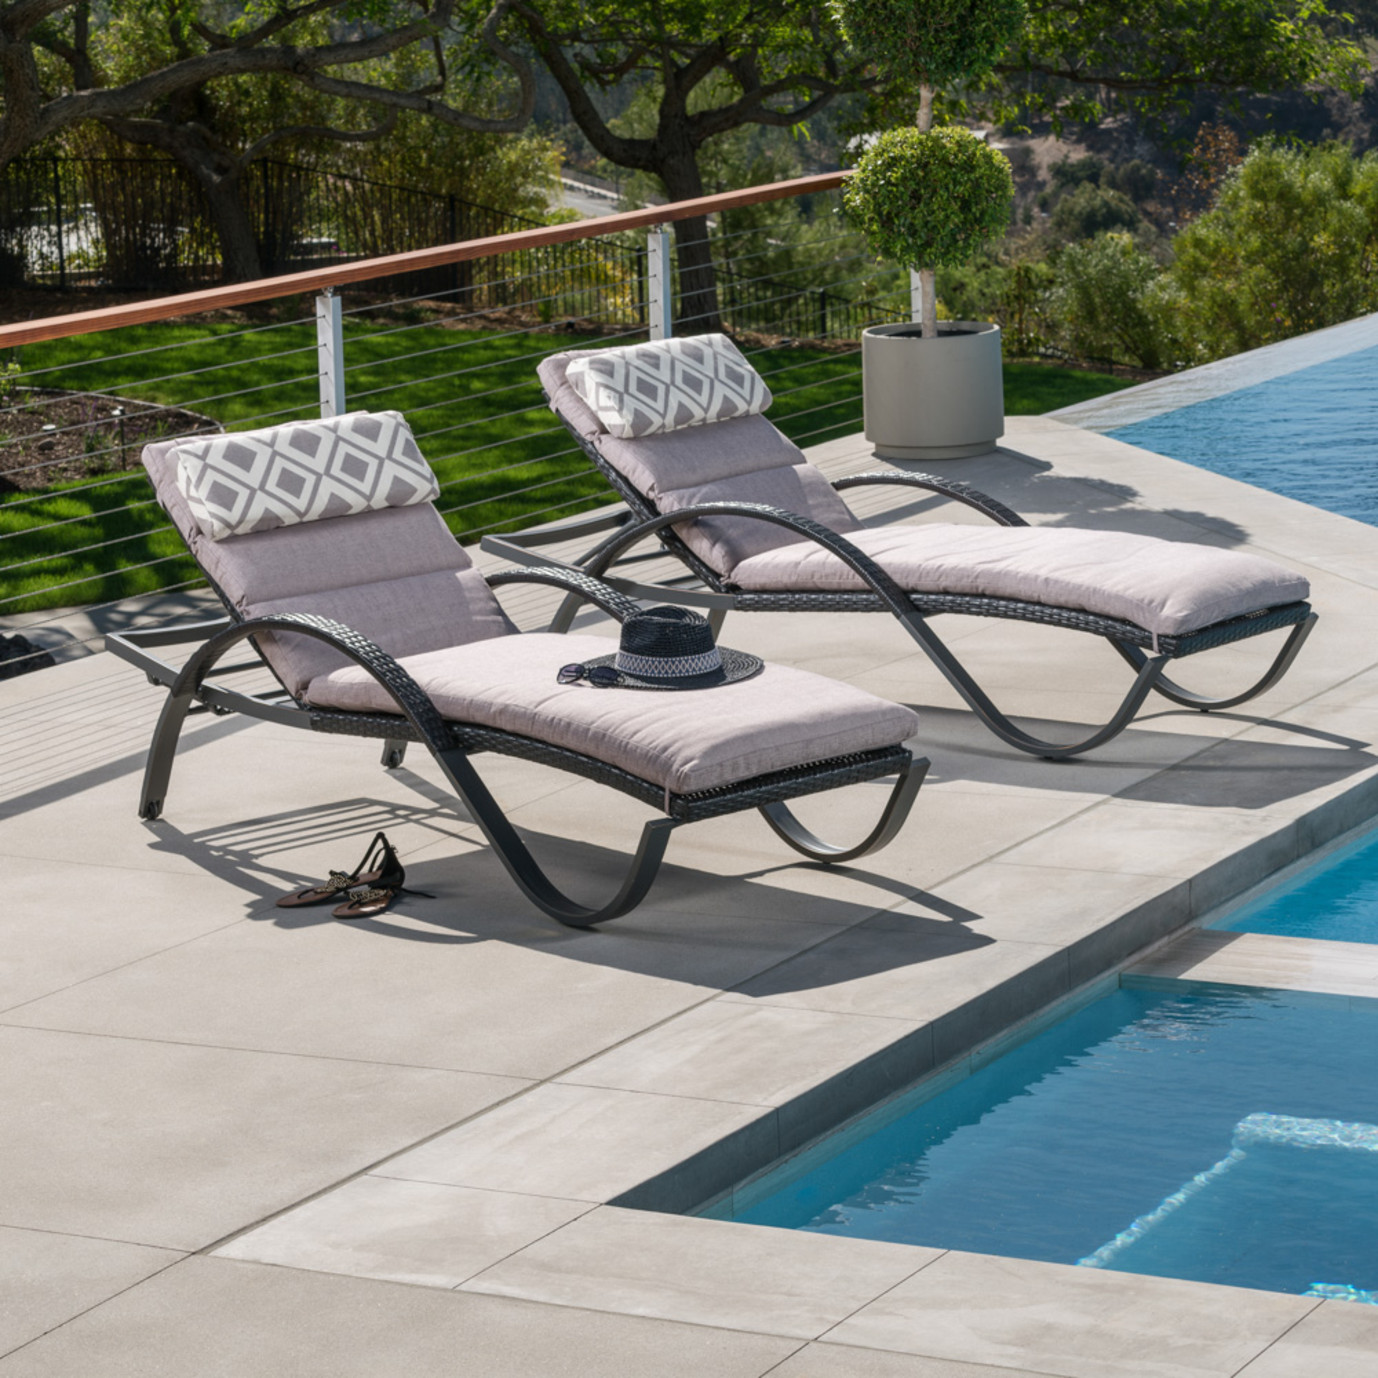 Deco™ Chaise Lounges with Cushions - Wisteria Lavender